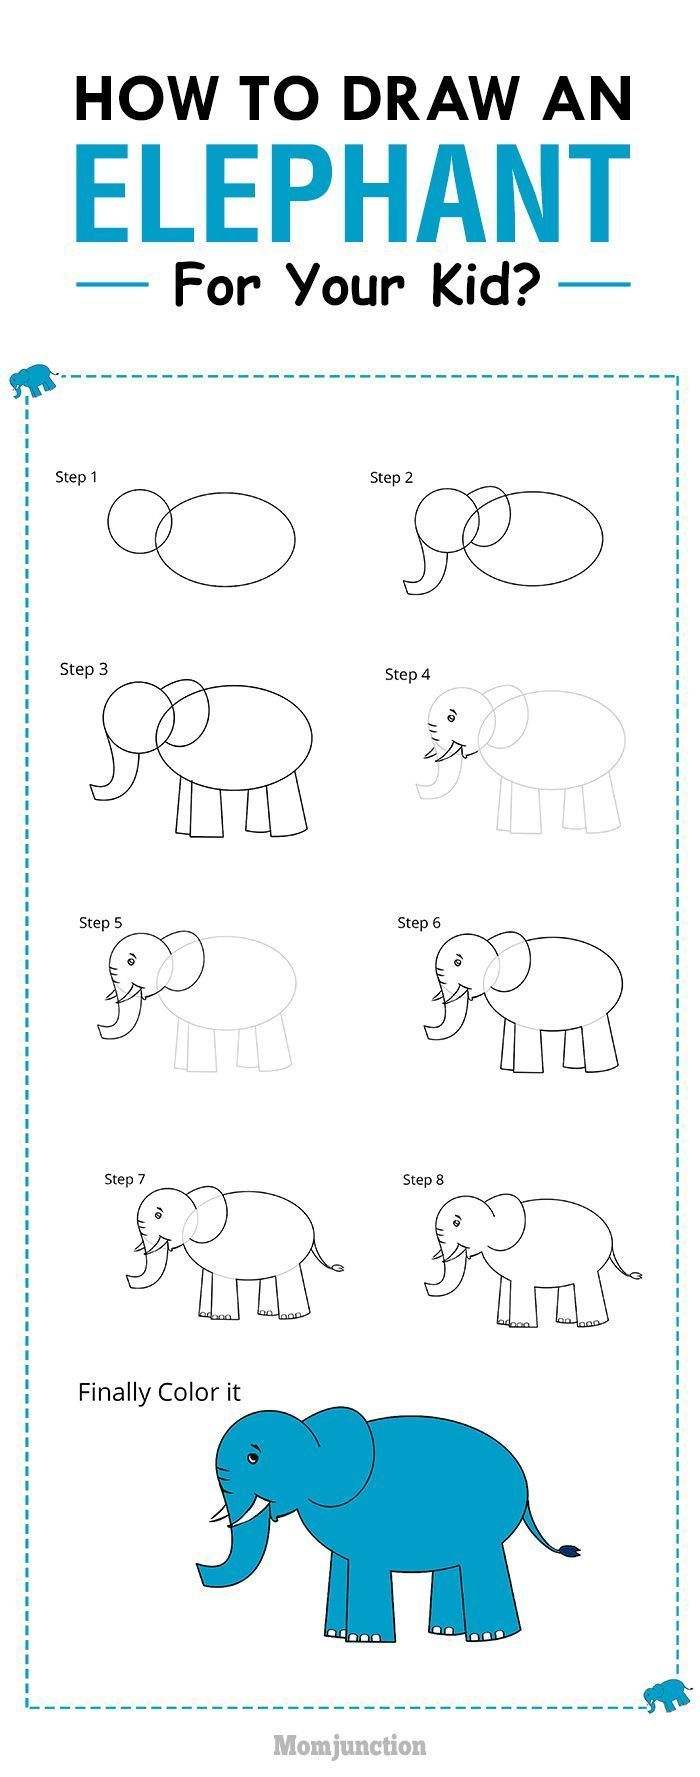 How To Draw An Elephant For Kids In Easy Steps | Zeichnen ...